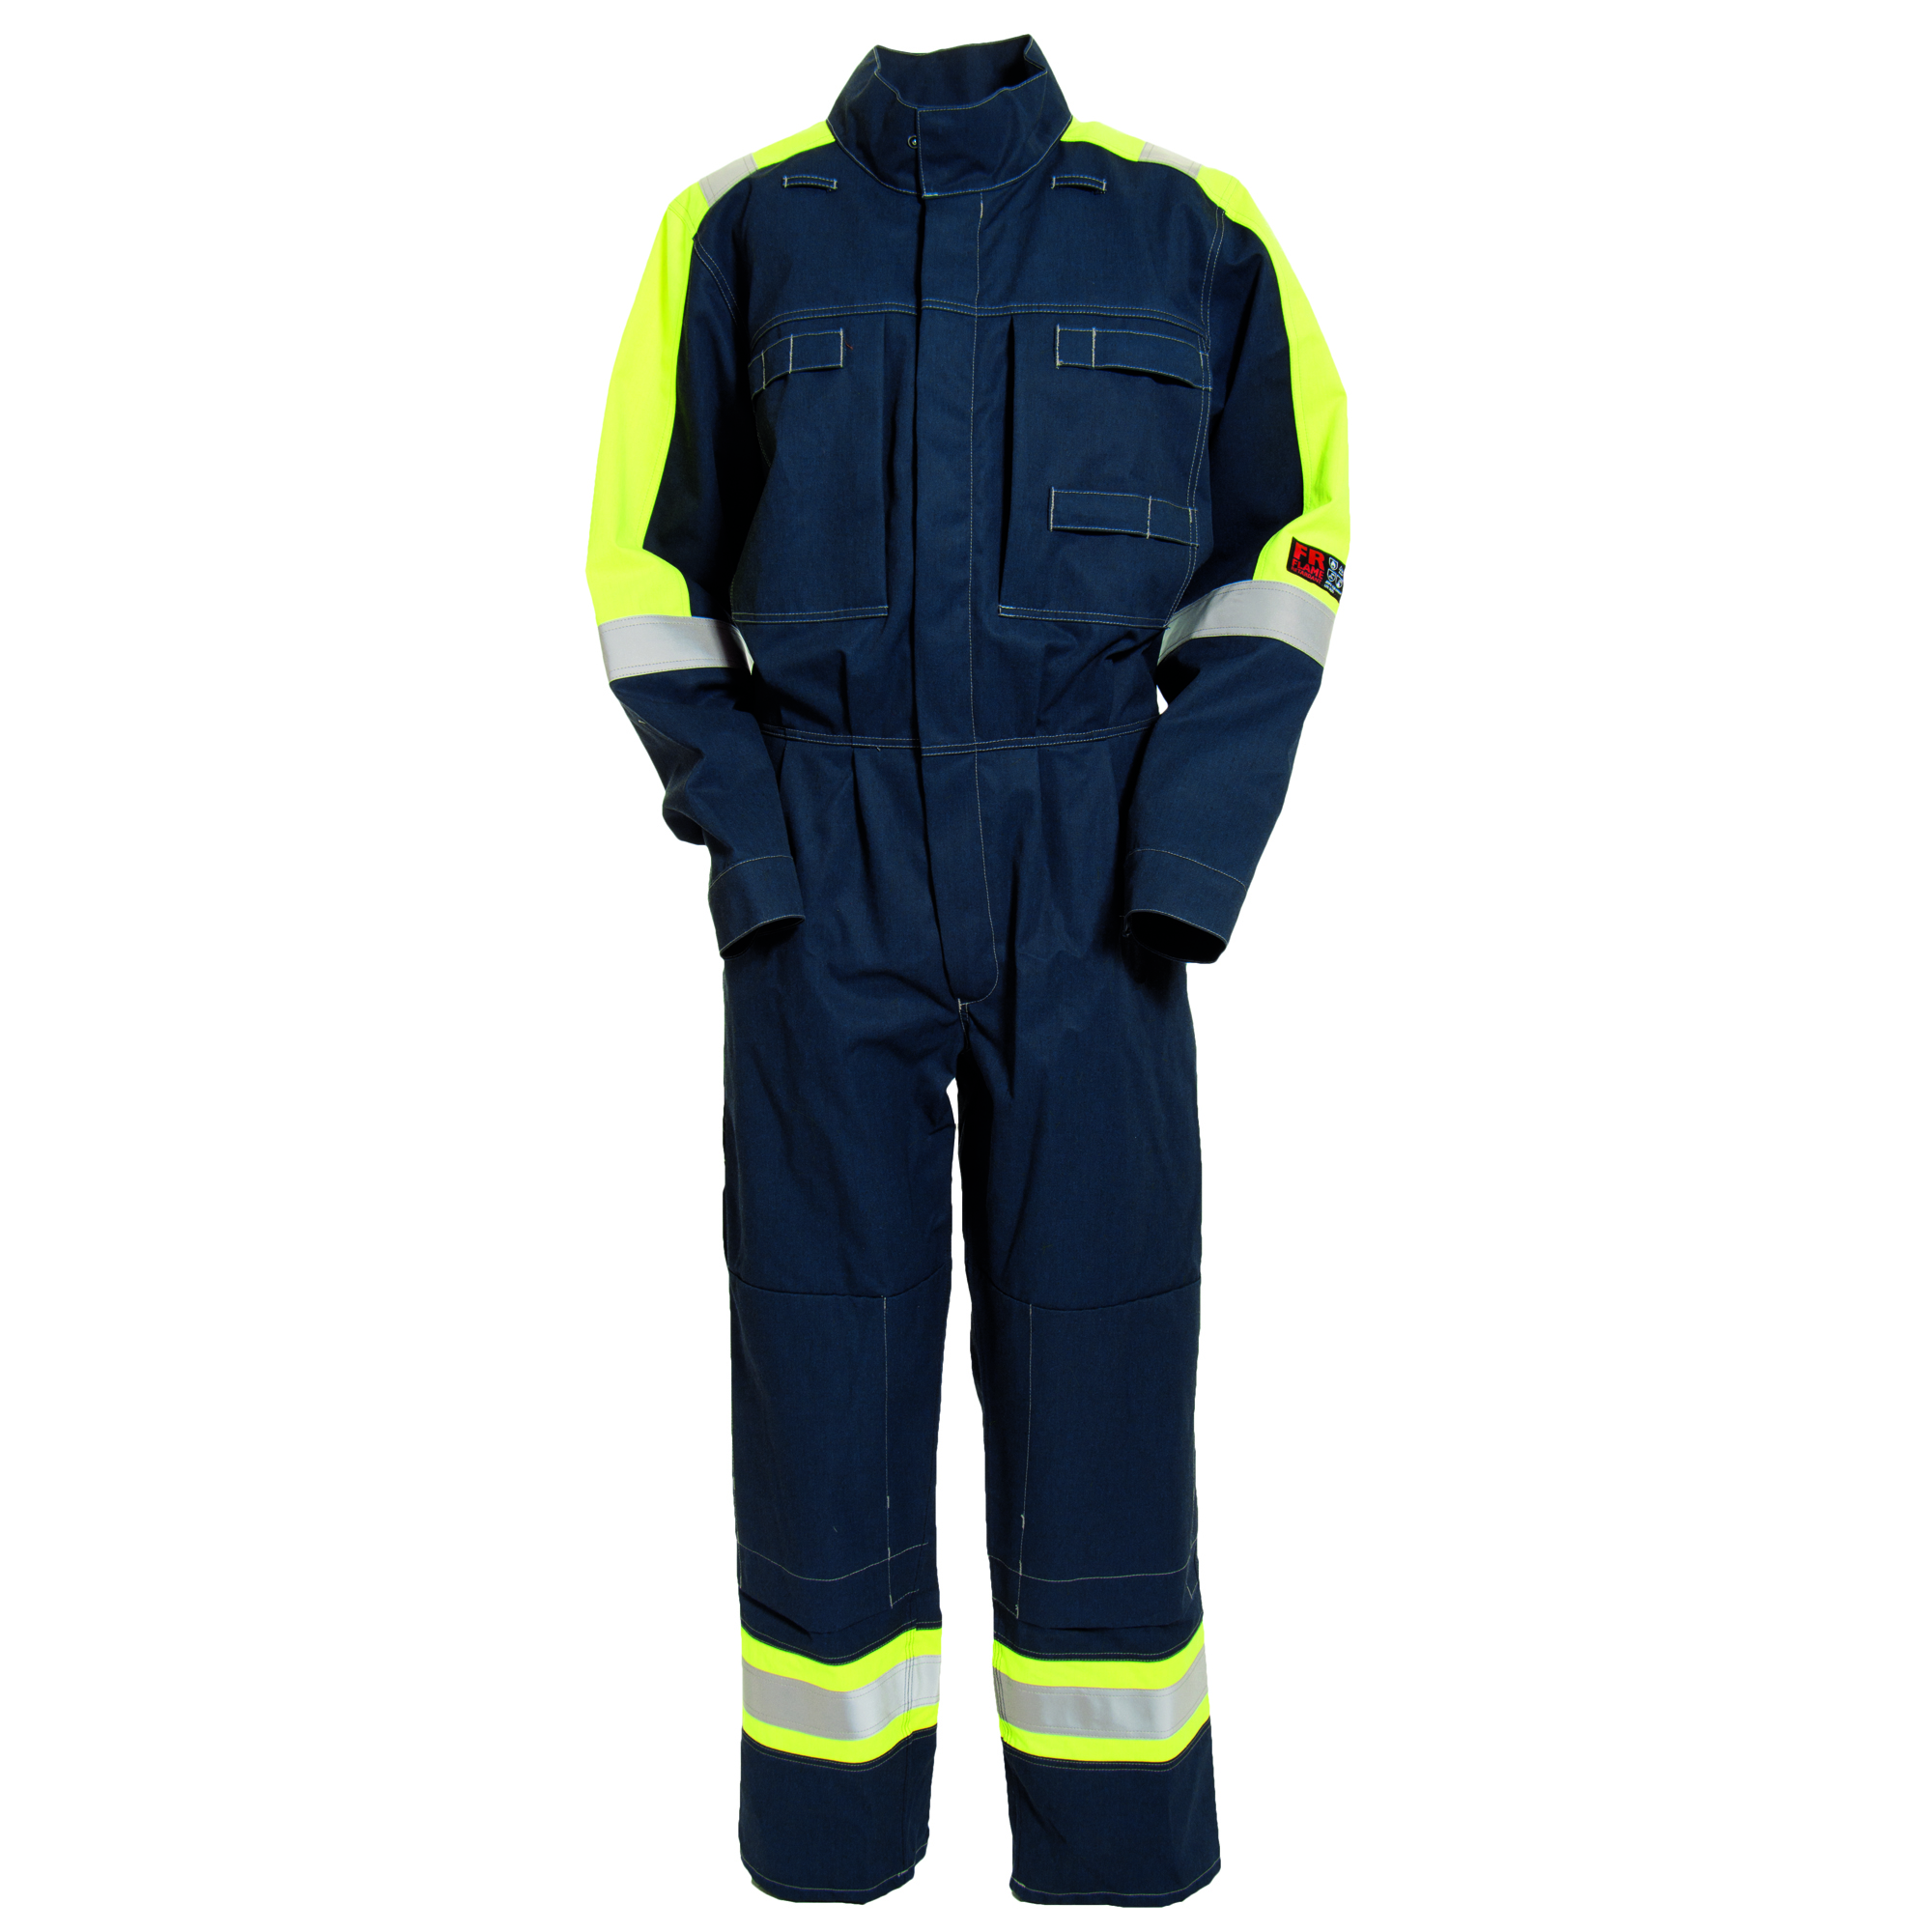 TRANEMO 5716 88 ARC FLASH BOILERSUIT - 11.9 CAL/CM2